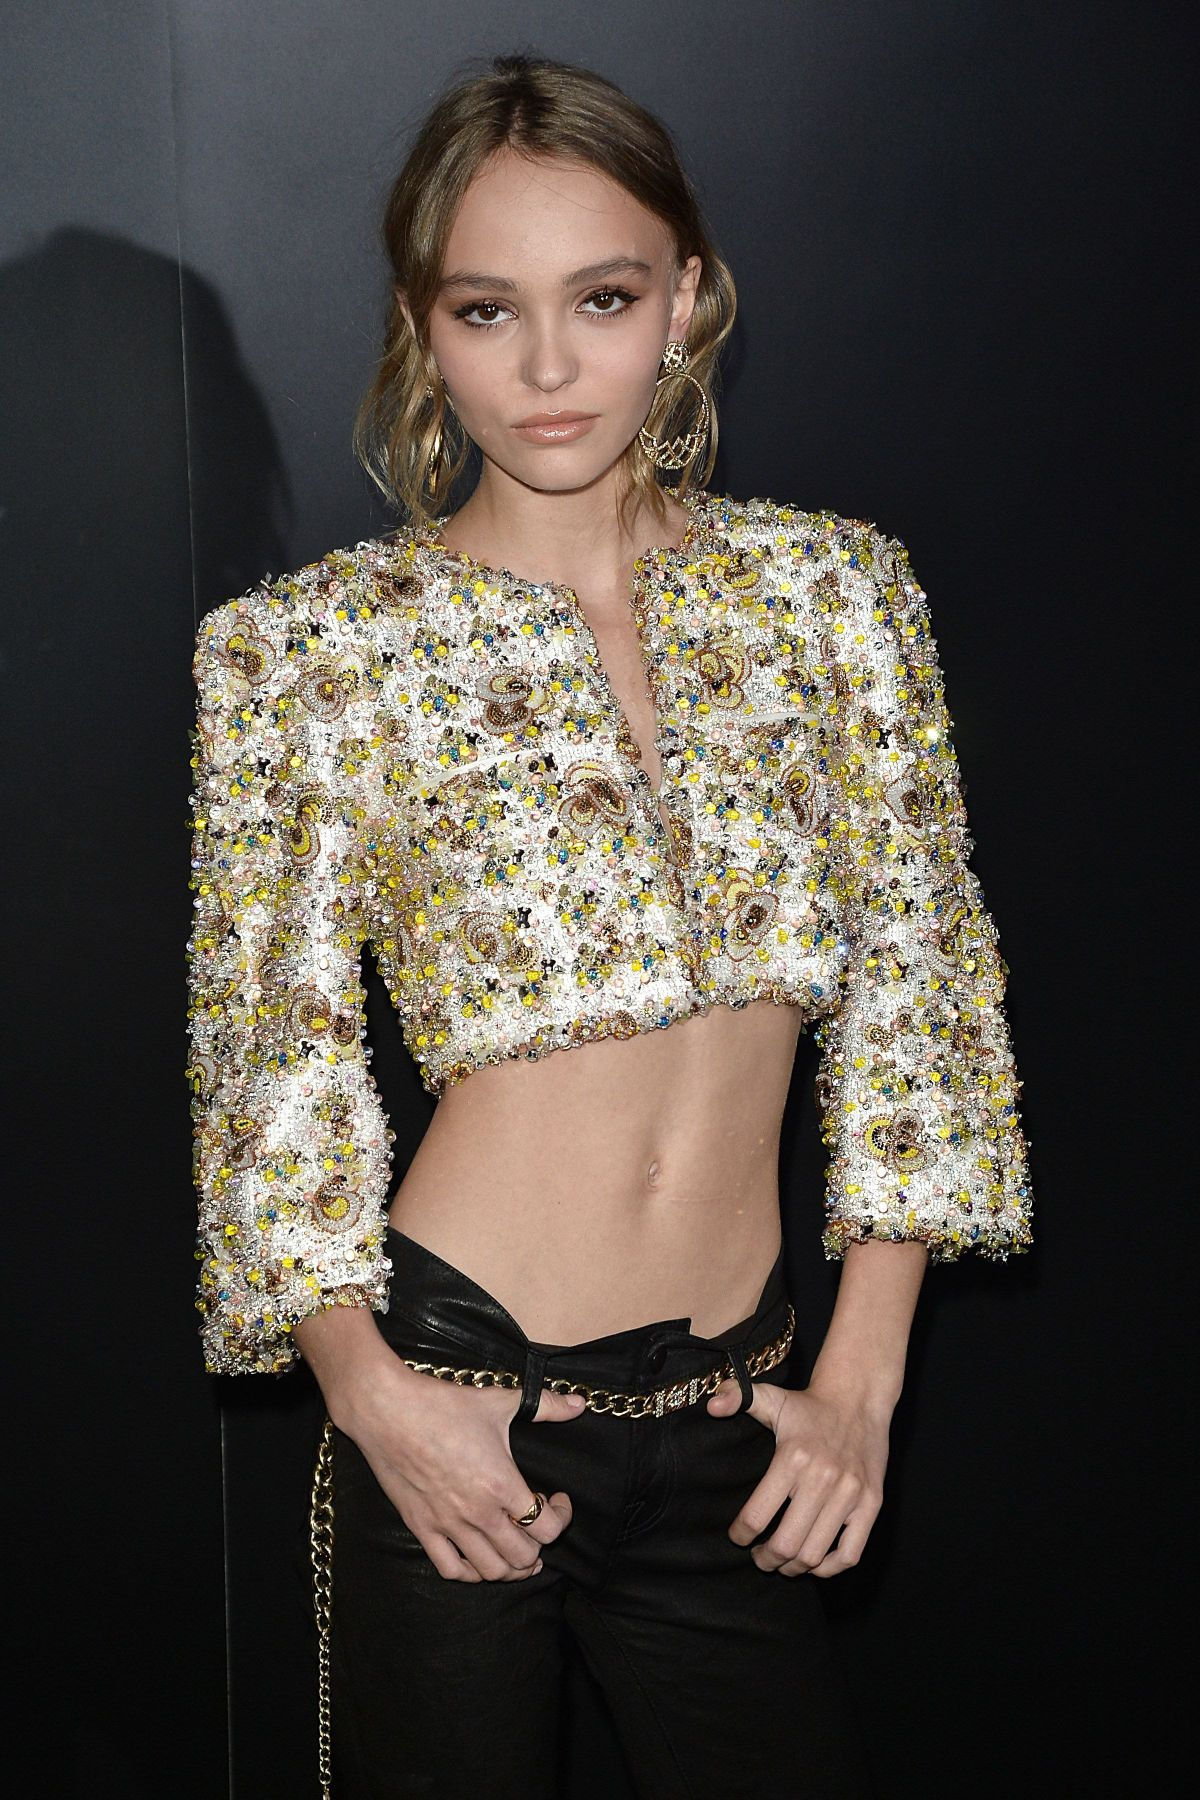 LILY-ROSE DEPP at Chanel Celebrates Launch of No.5 L'Eau in Los Angeles 09/22/2016